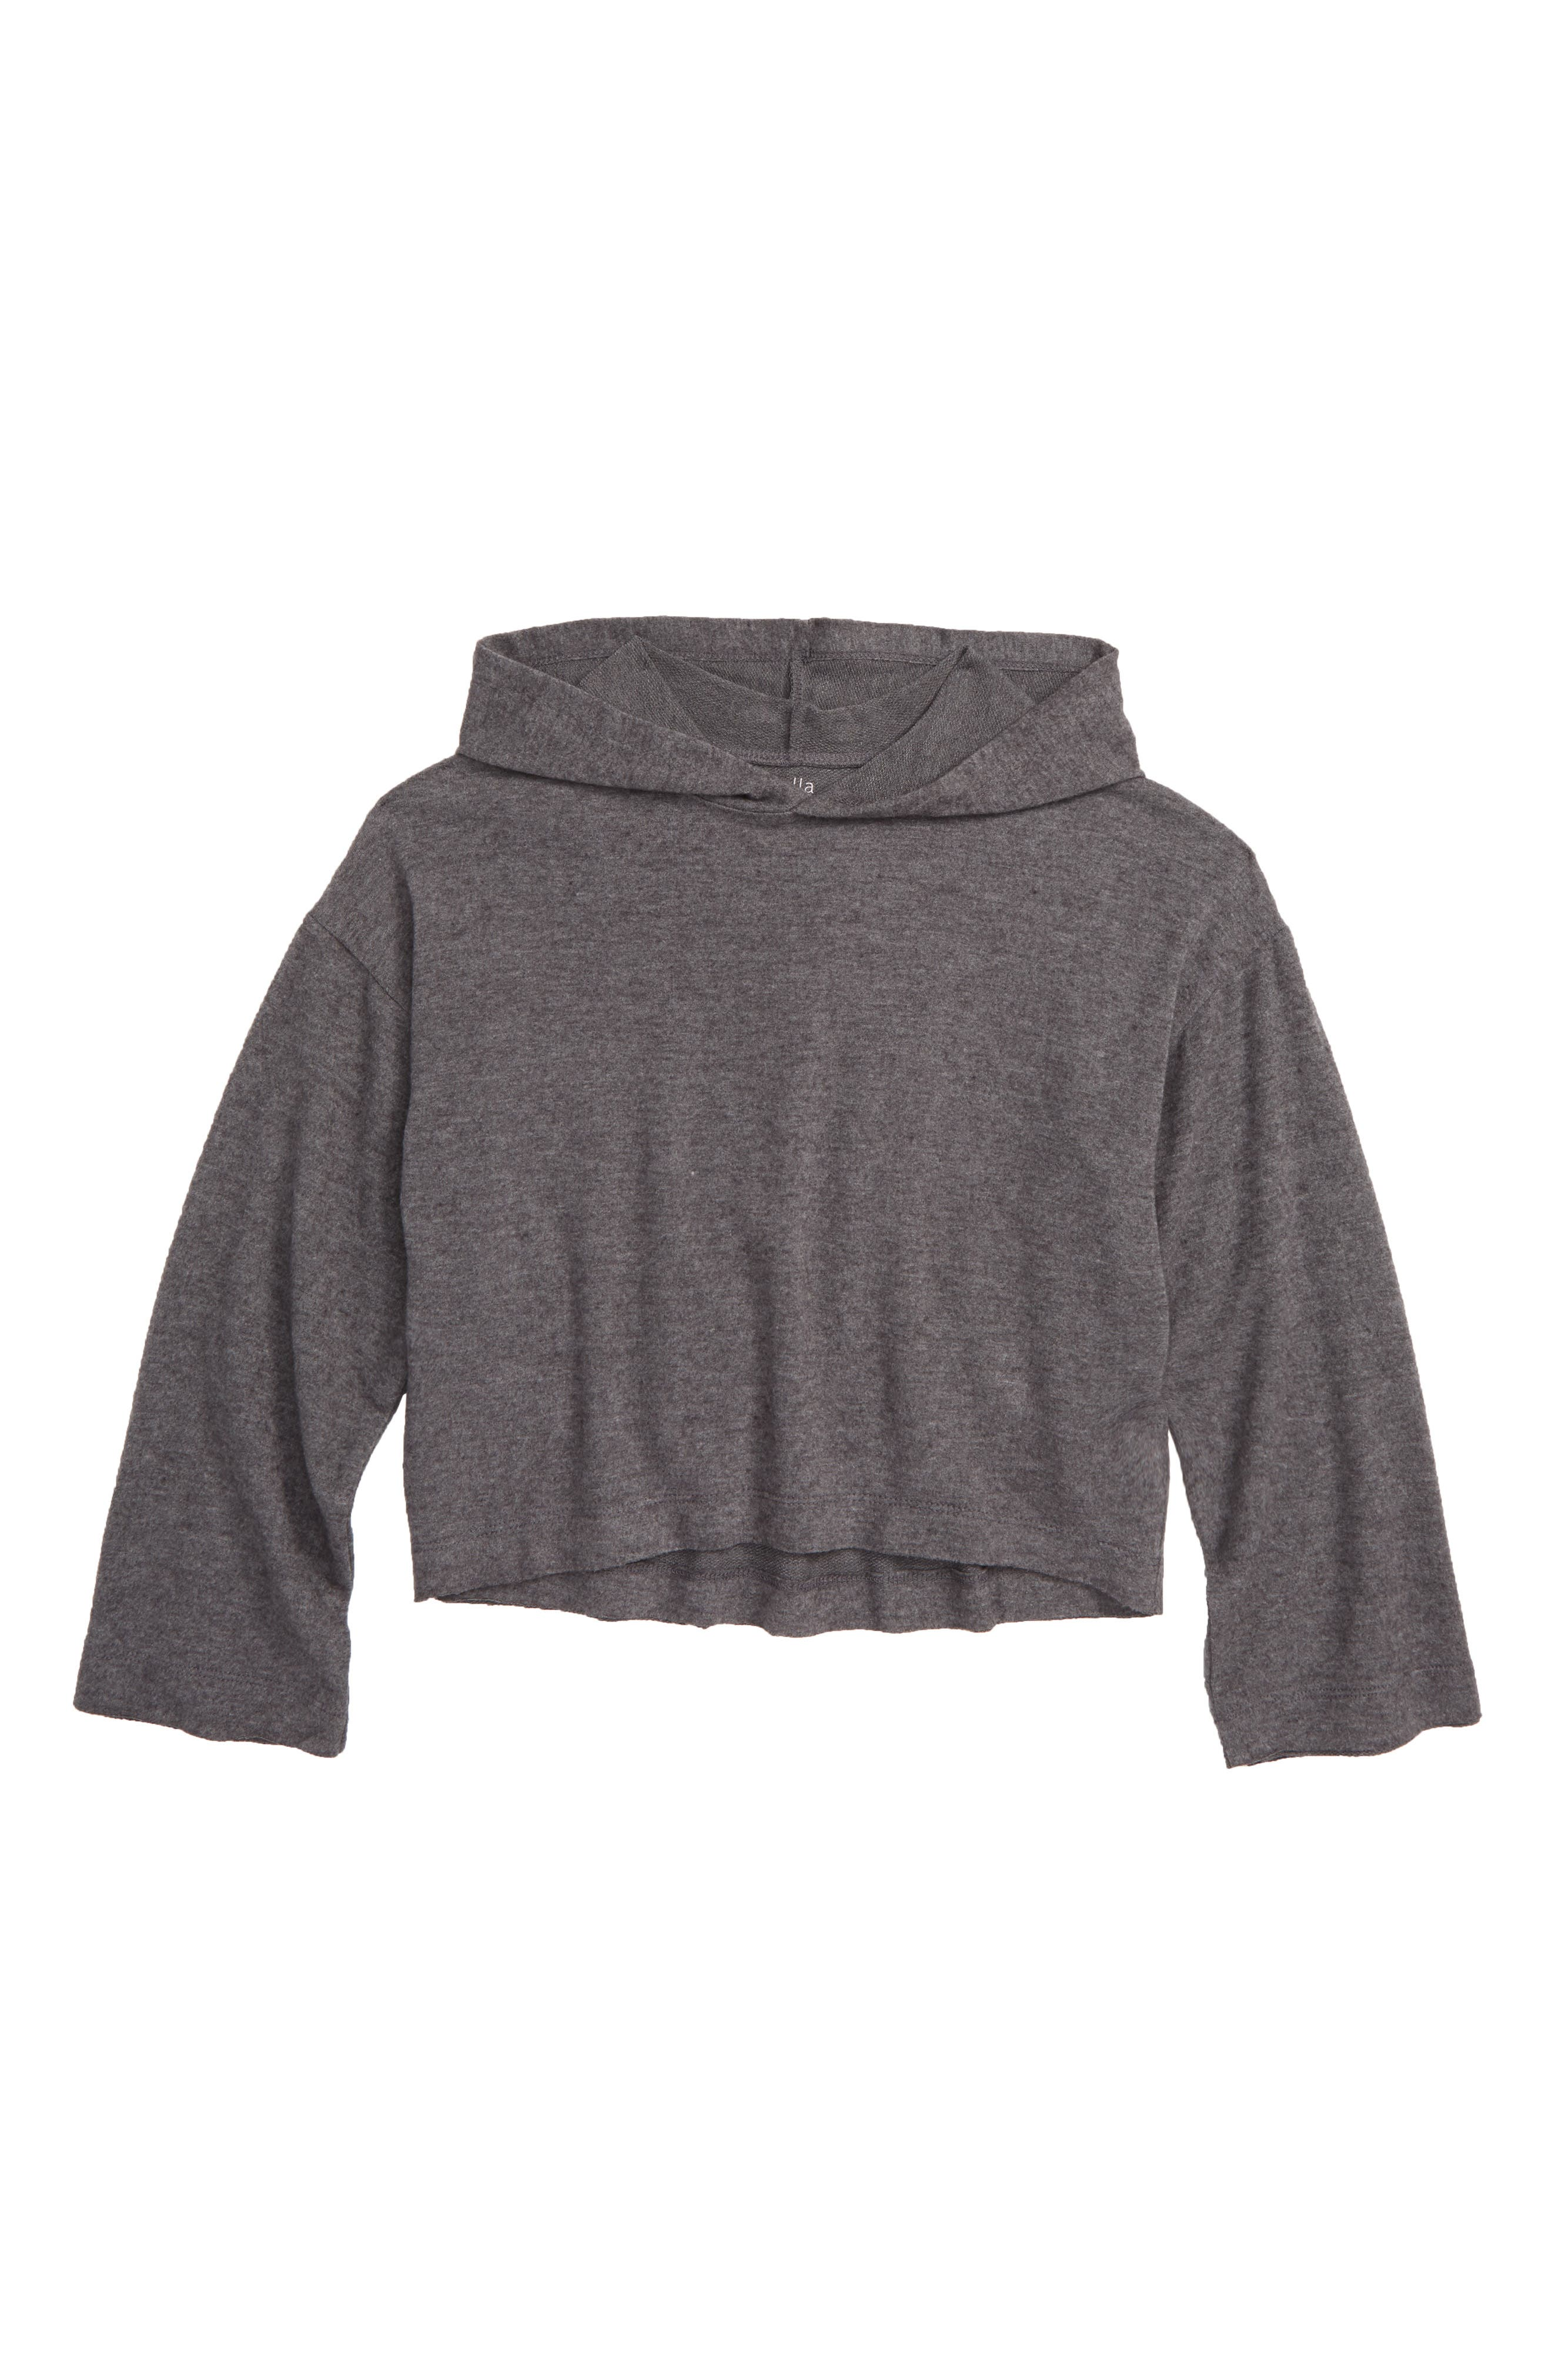 Boxy Hooded Pullover,                         Main,                         color, GREY CHARCOAL HEATHER